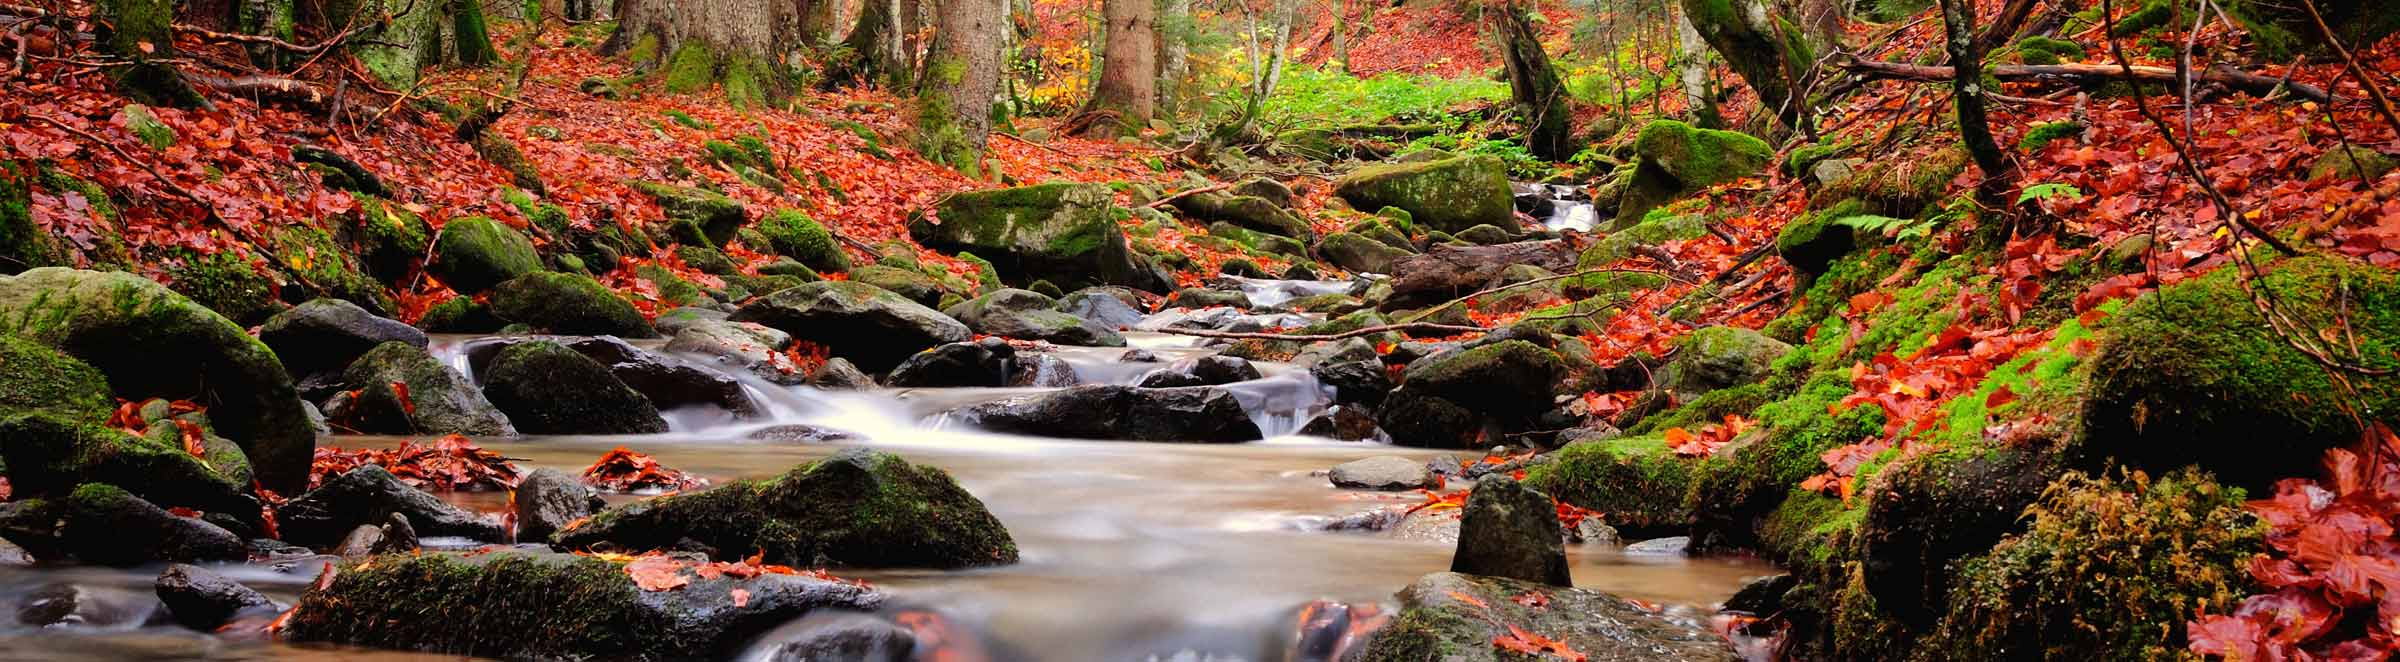 river in the fall with moss rocks